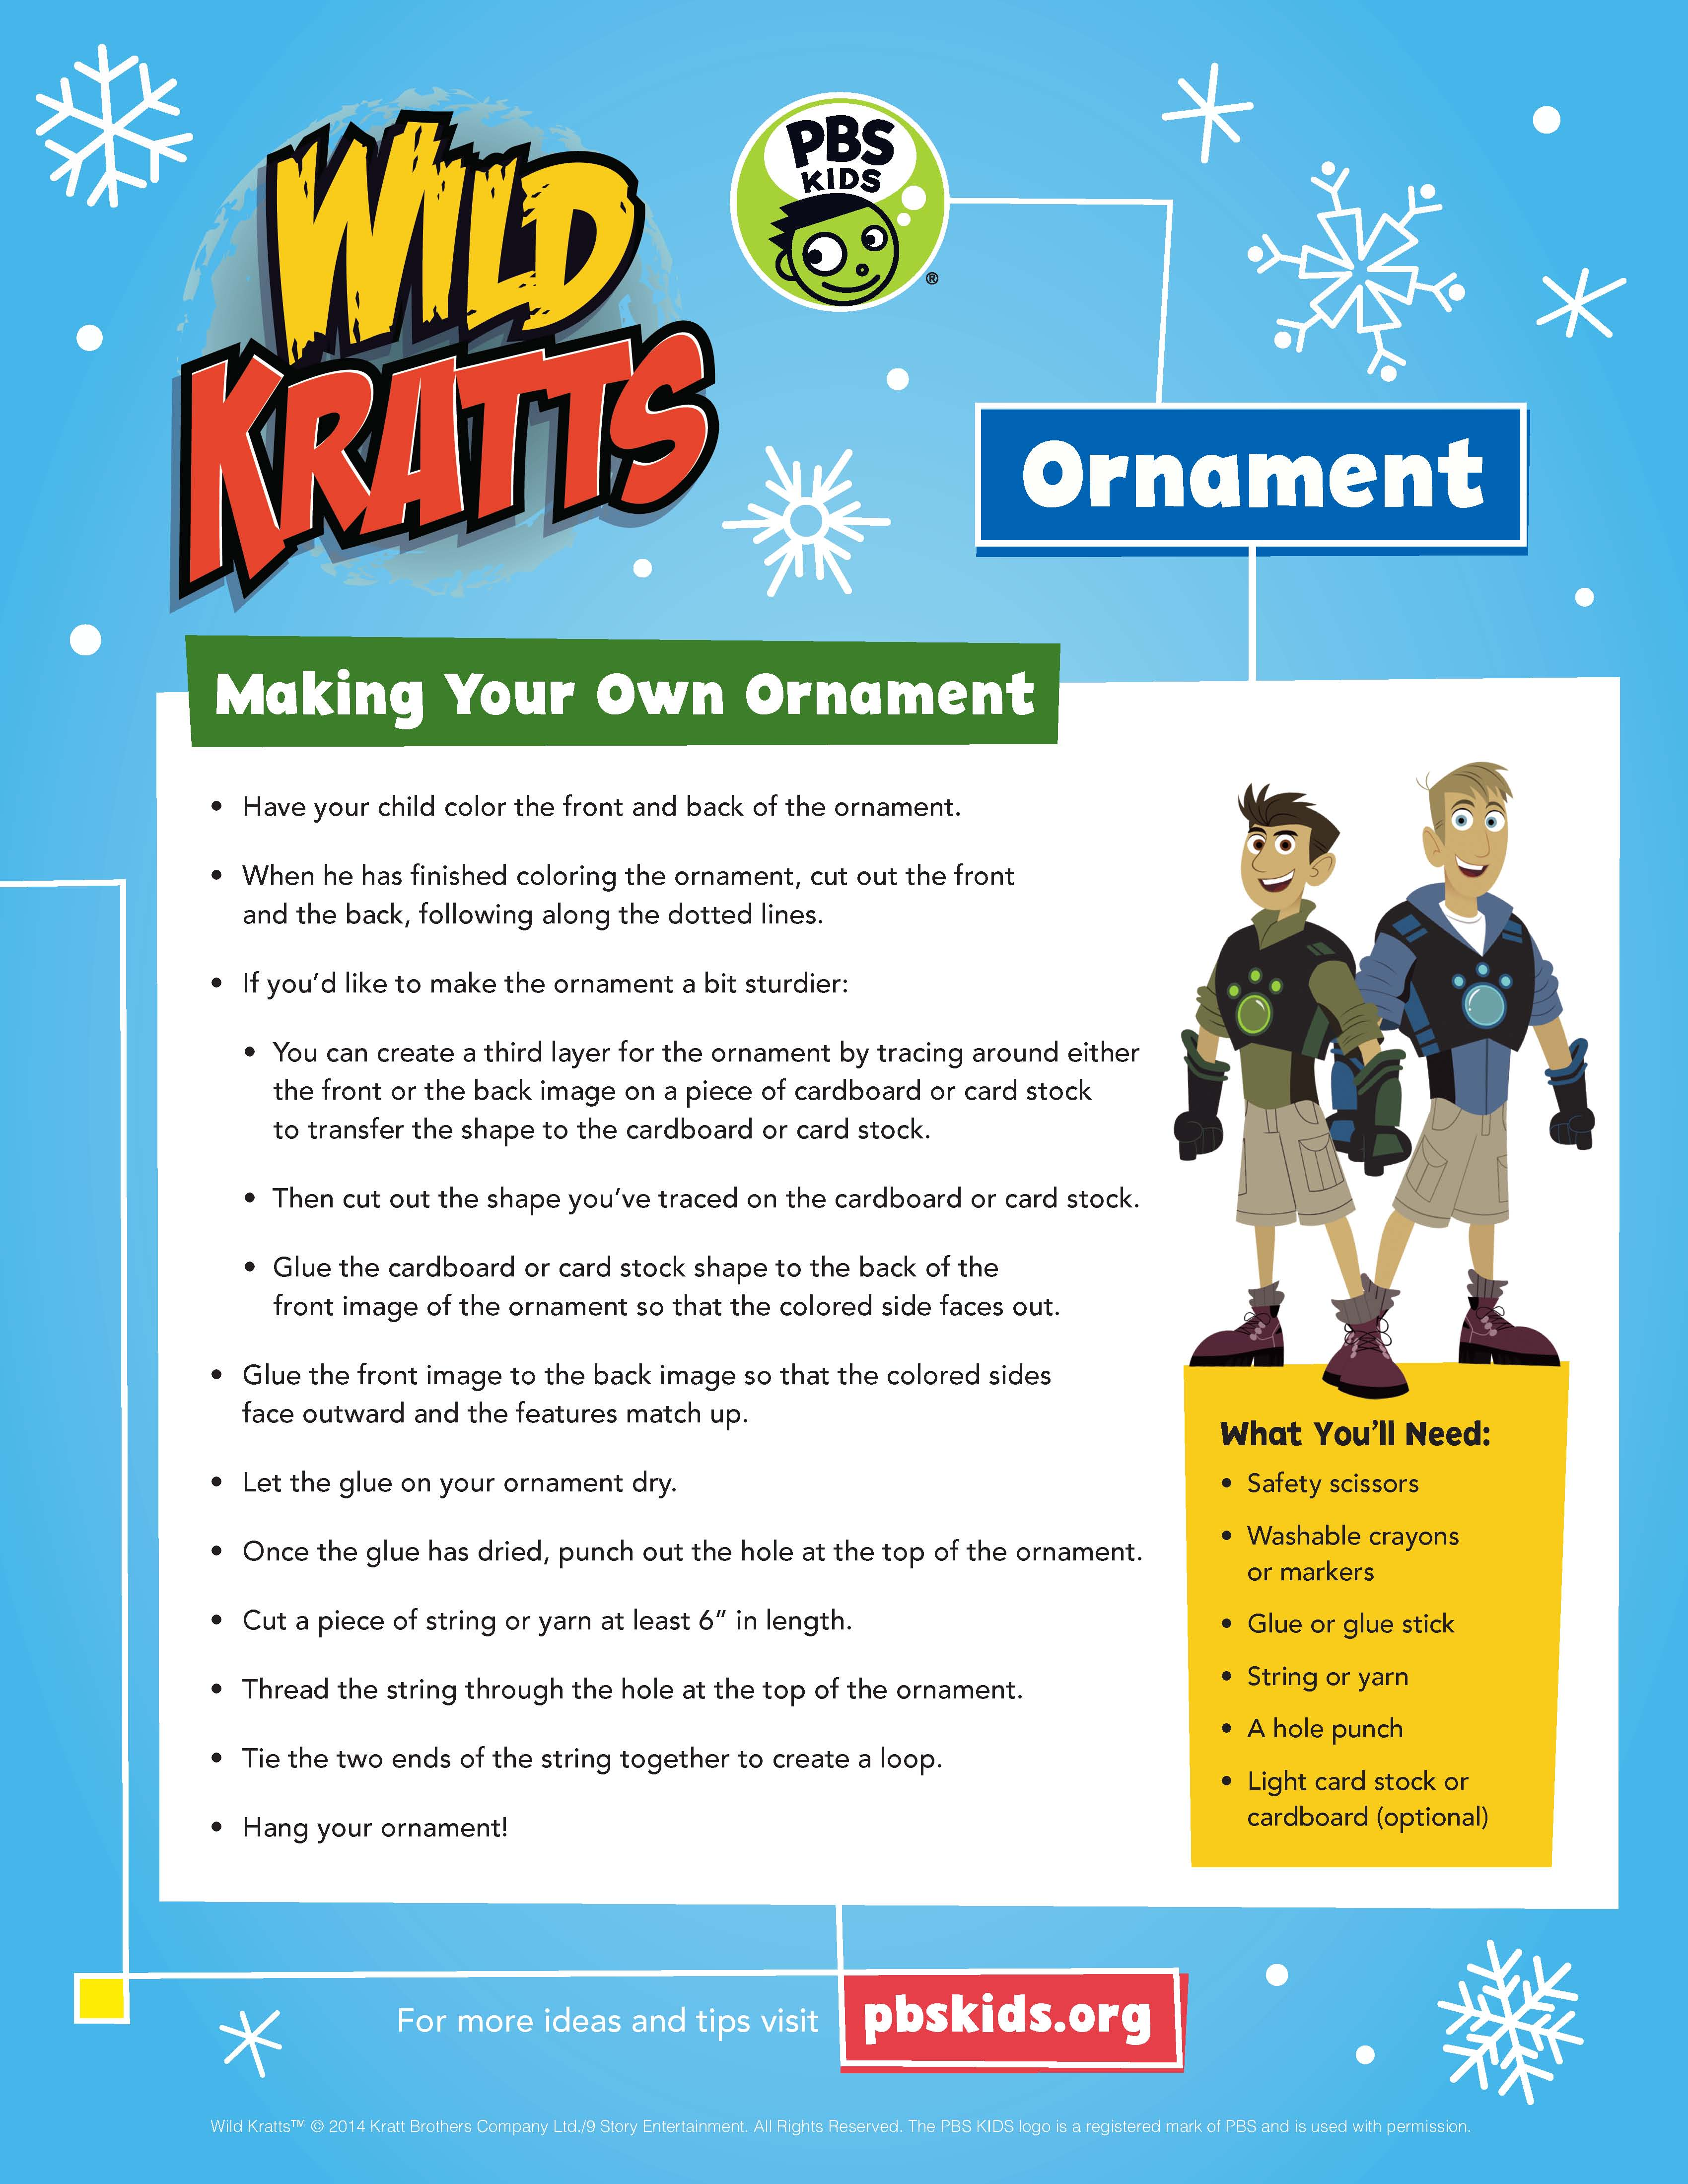 Wild kratts ornament_Page_1